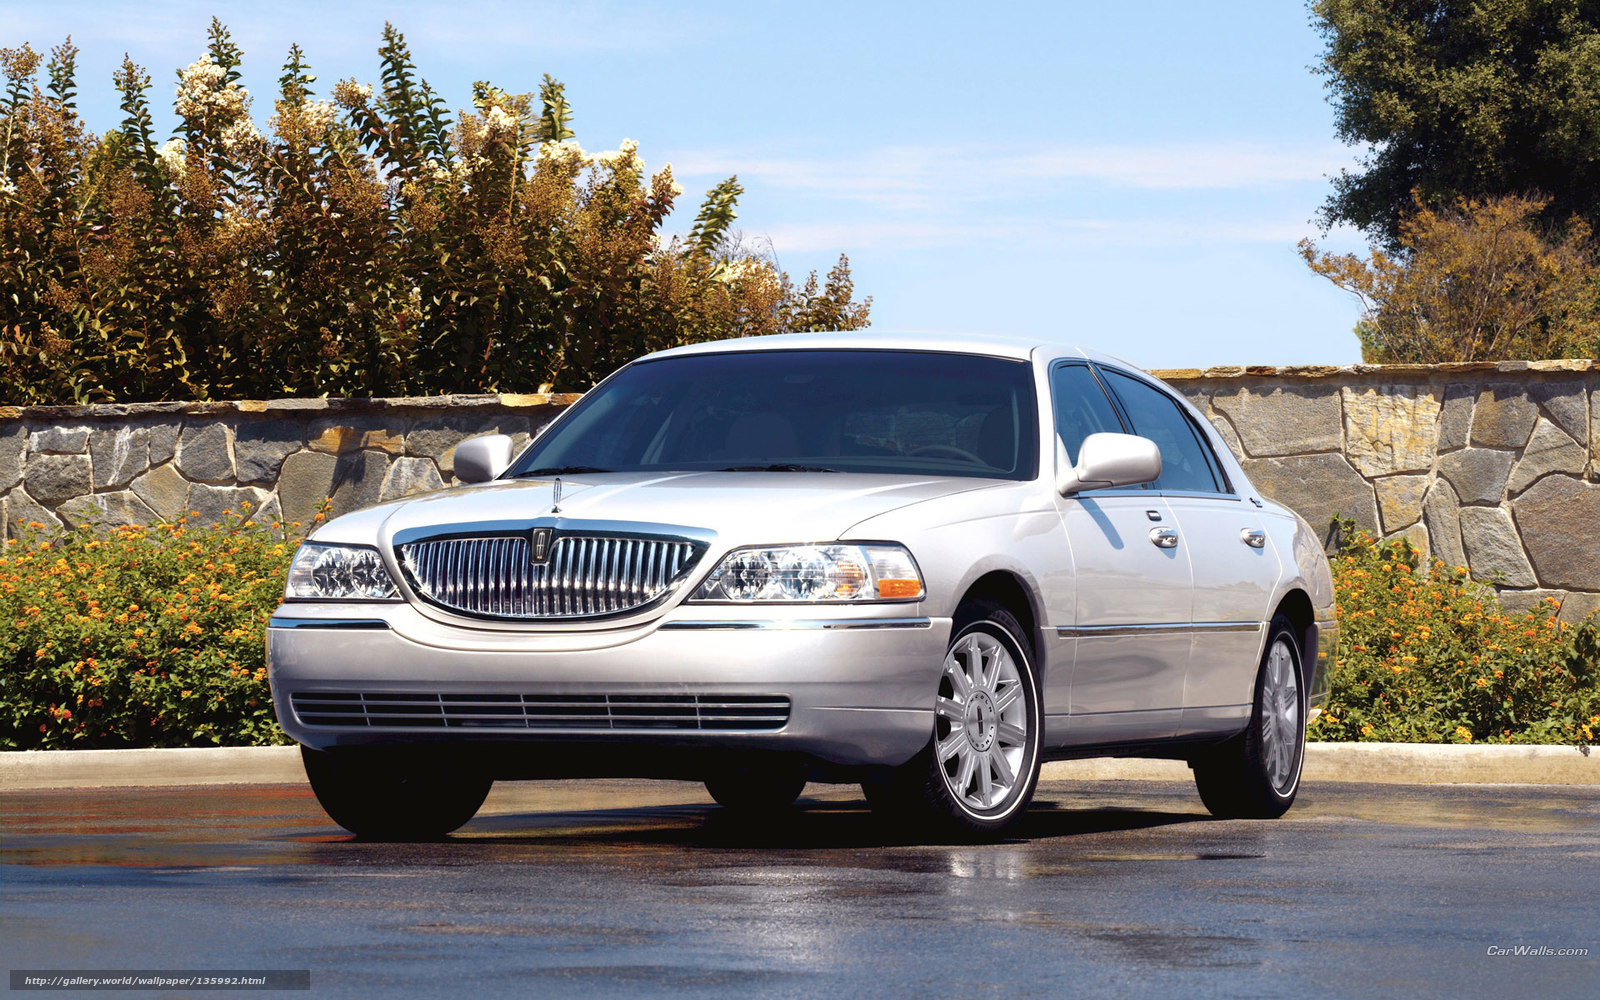 Tlcharger Fond D Ecran Lincoln Town Car Voiture